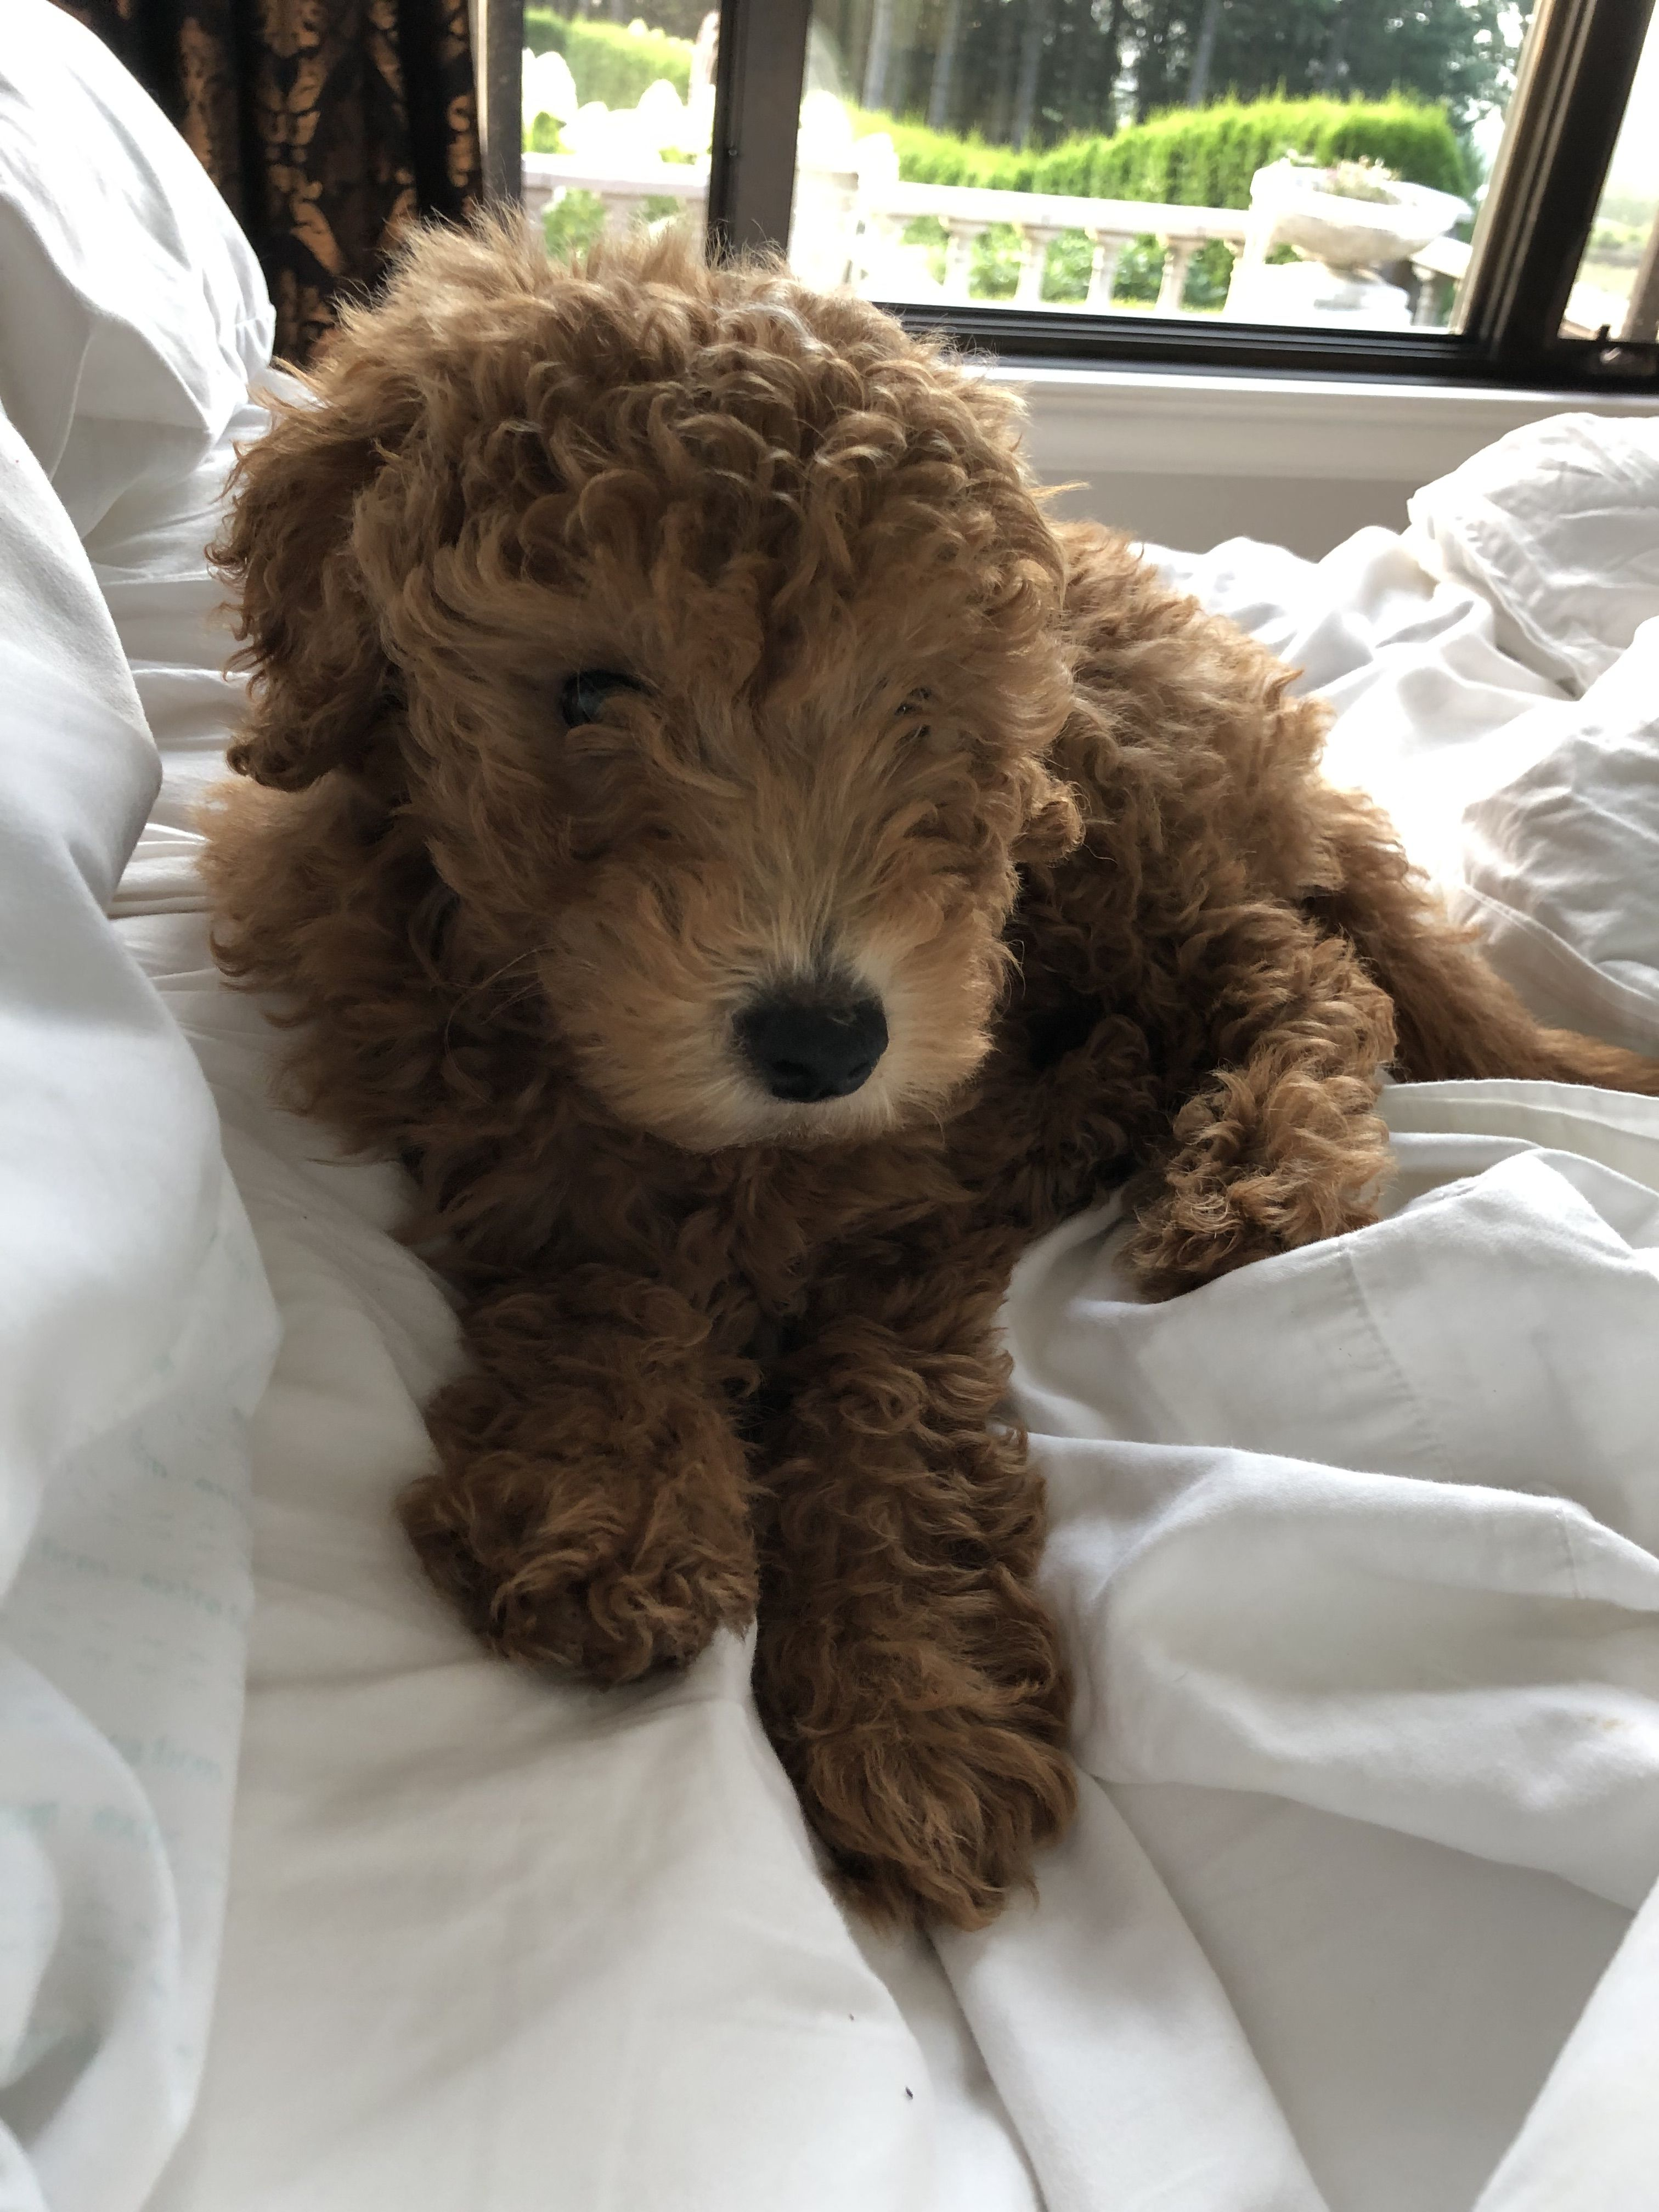 Chihuahua Poodle Mix Meet The Cheerful Chipoo Pup In 2020 Chihuahua Poodle Mix Poodle Puppy Dog Breeds